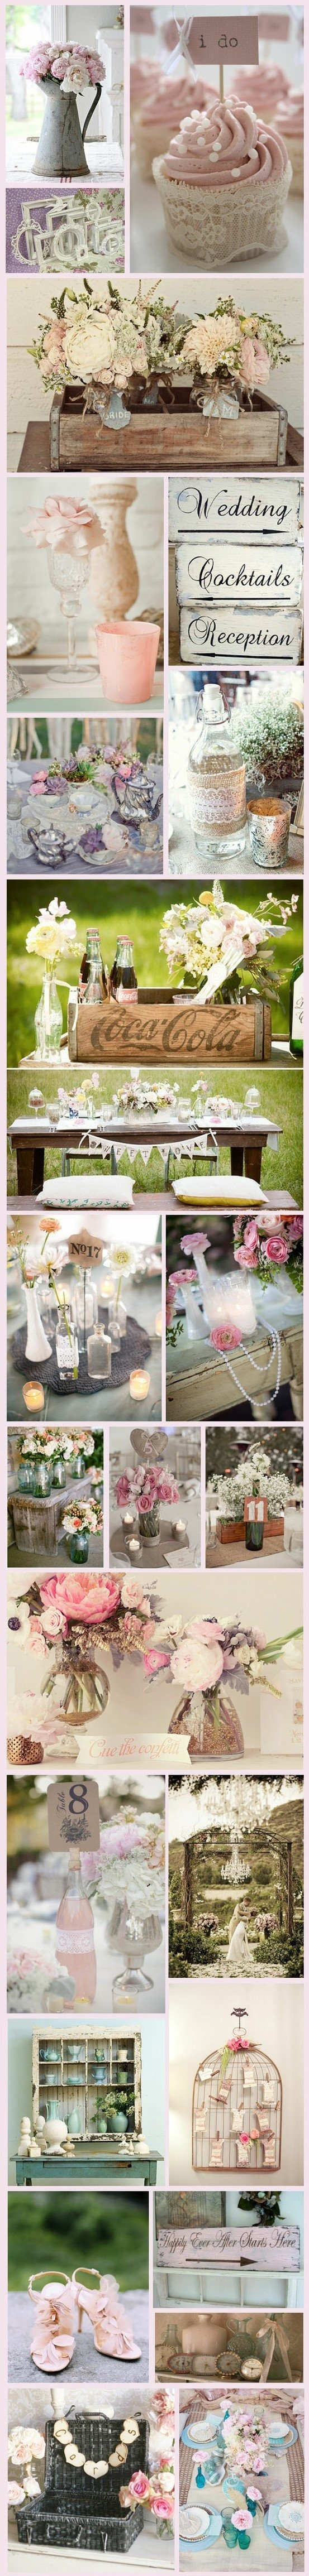 Inspirations for your rustic wedding.